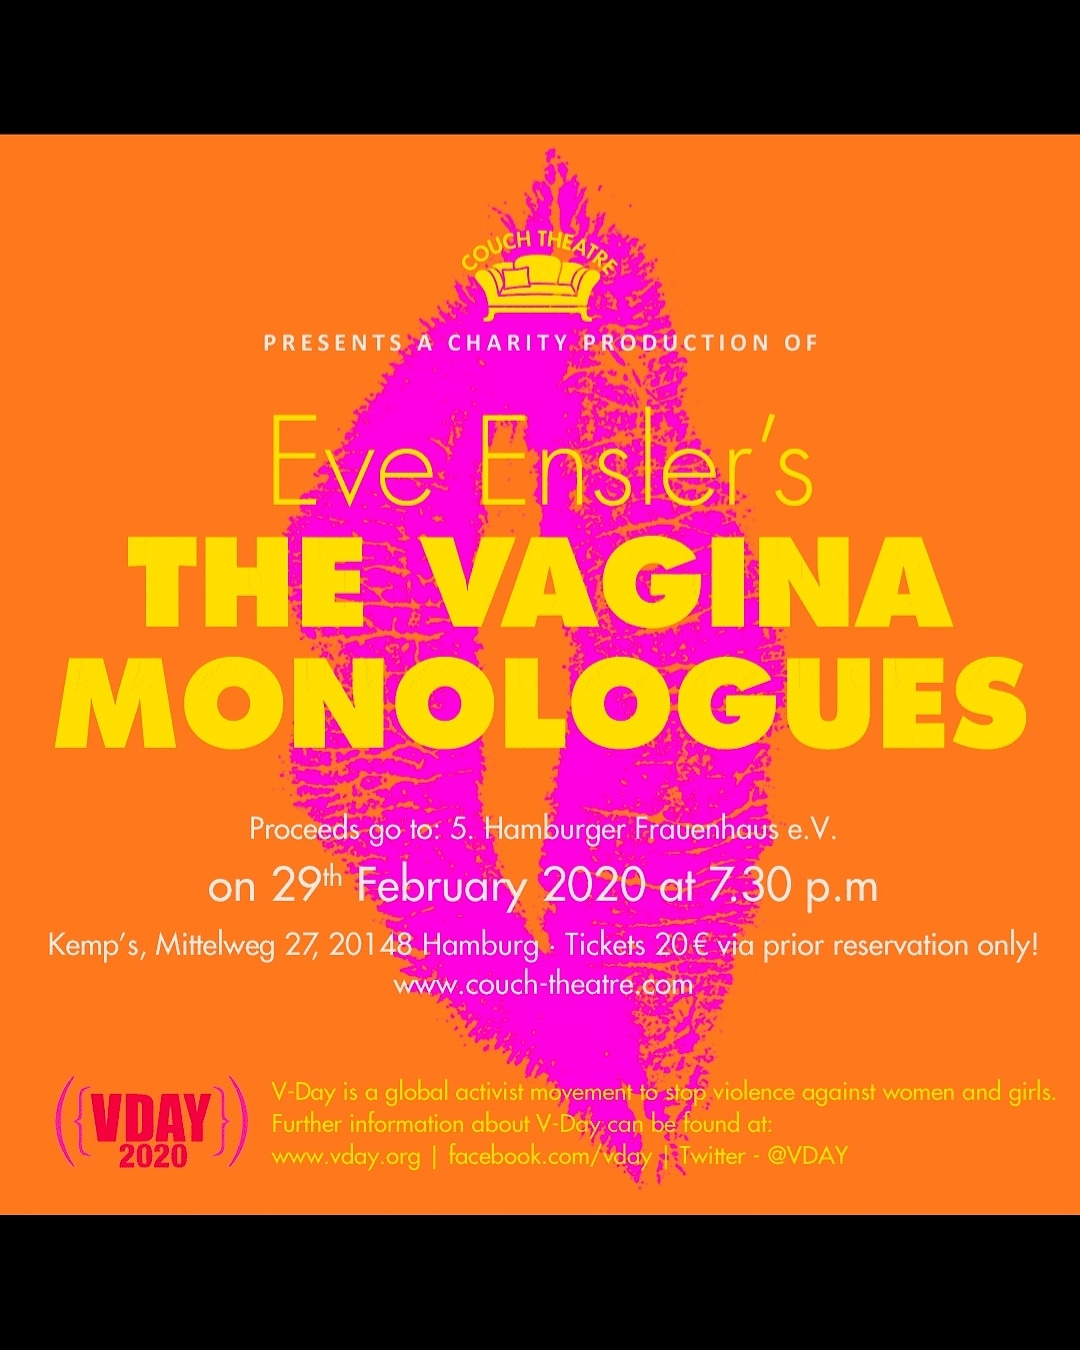 One Year Ago: The VaginaMonologues